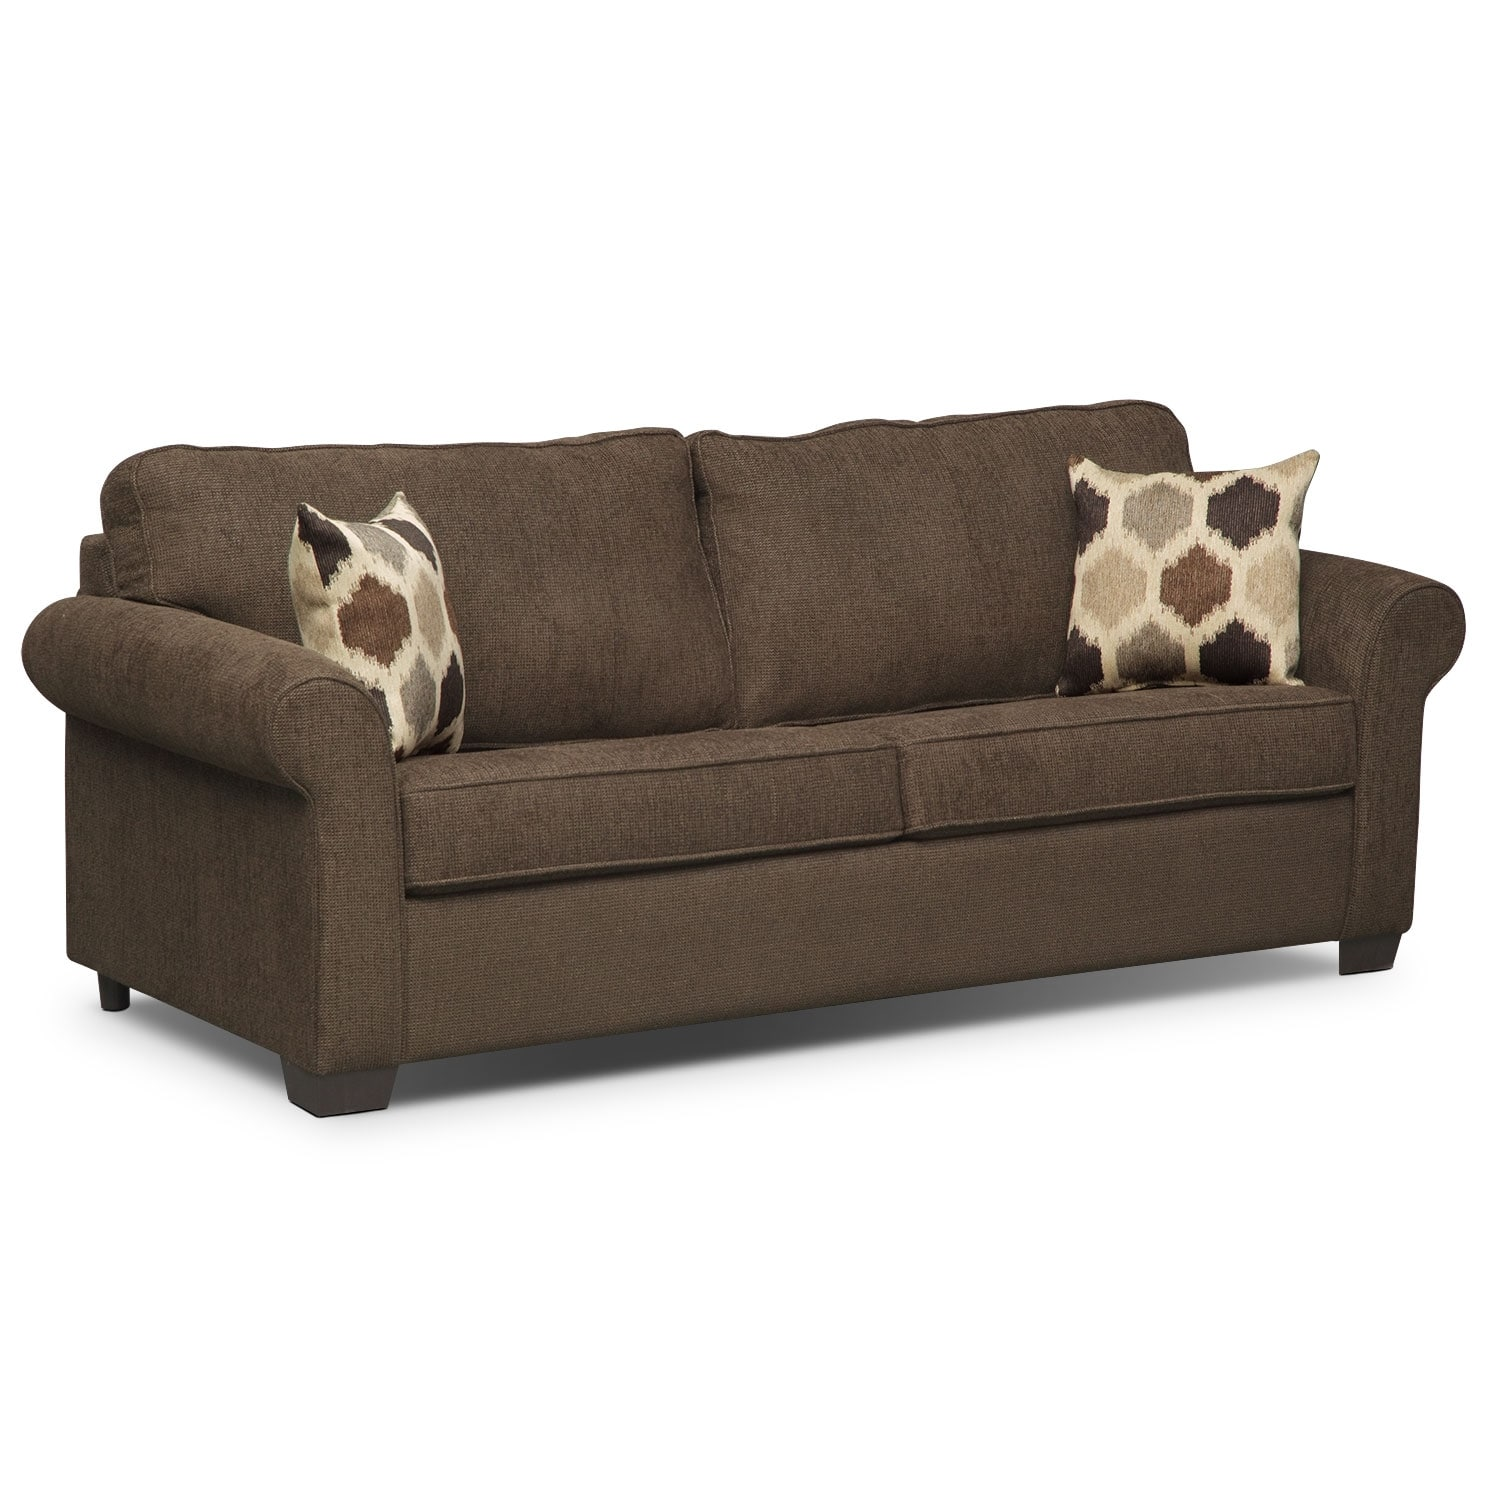 Fletcher Ii Queen Innerspring Sleeper Sofa Value City